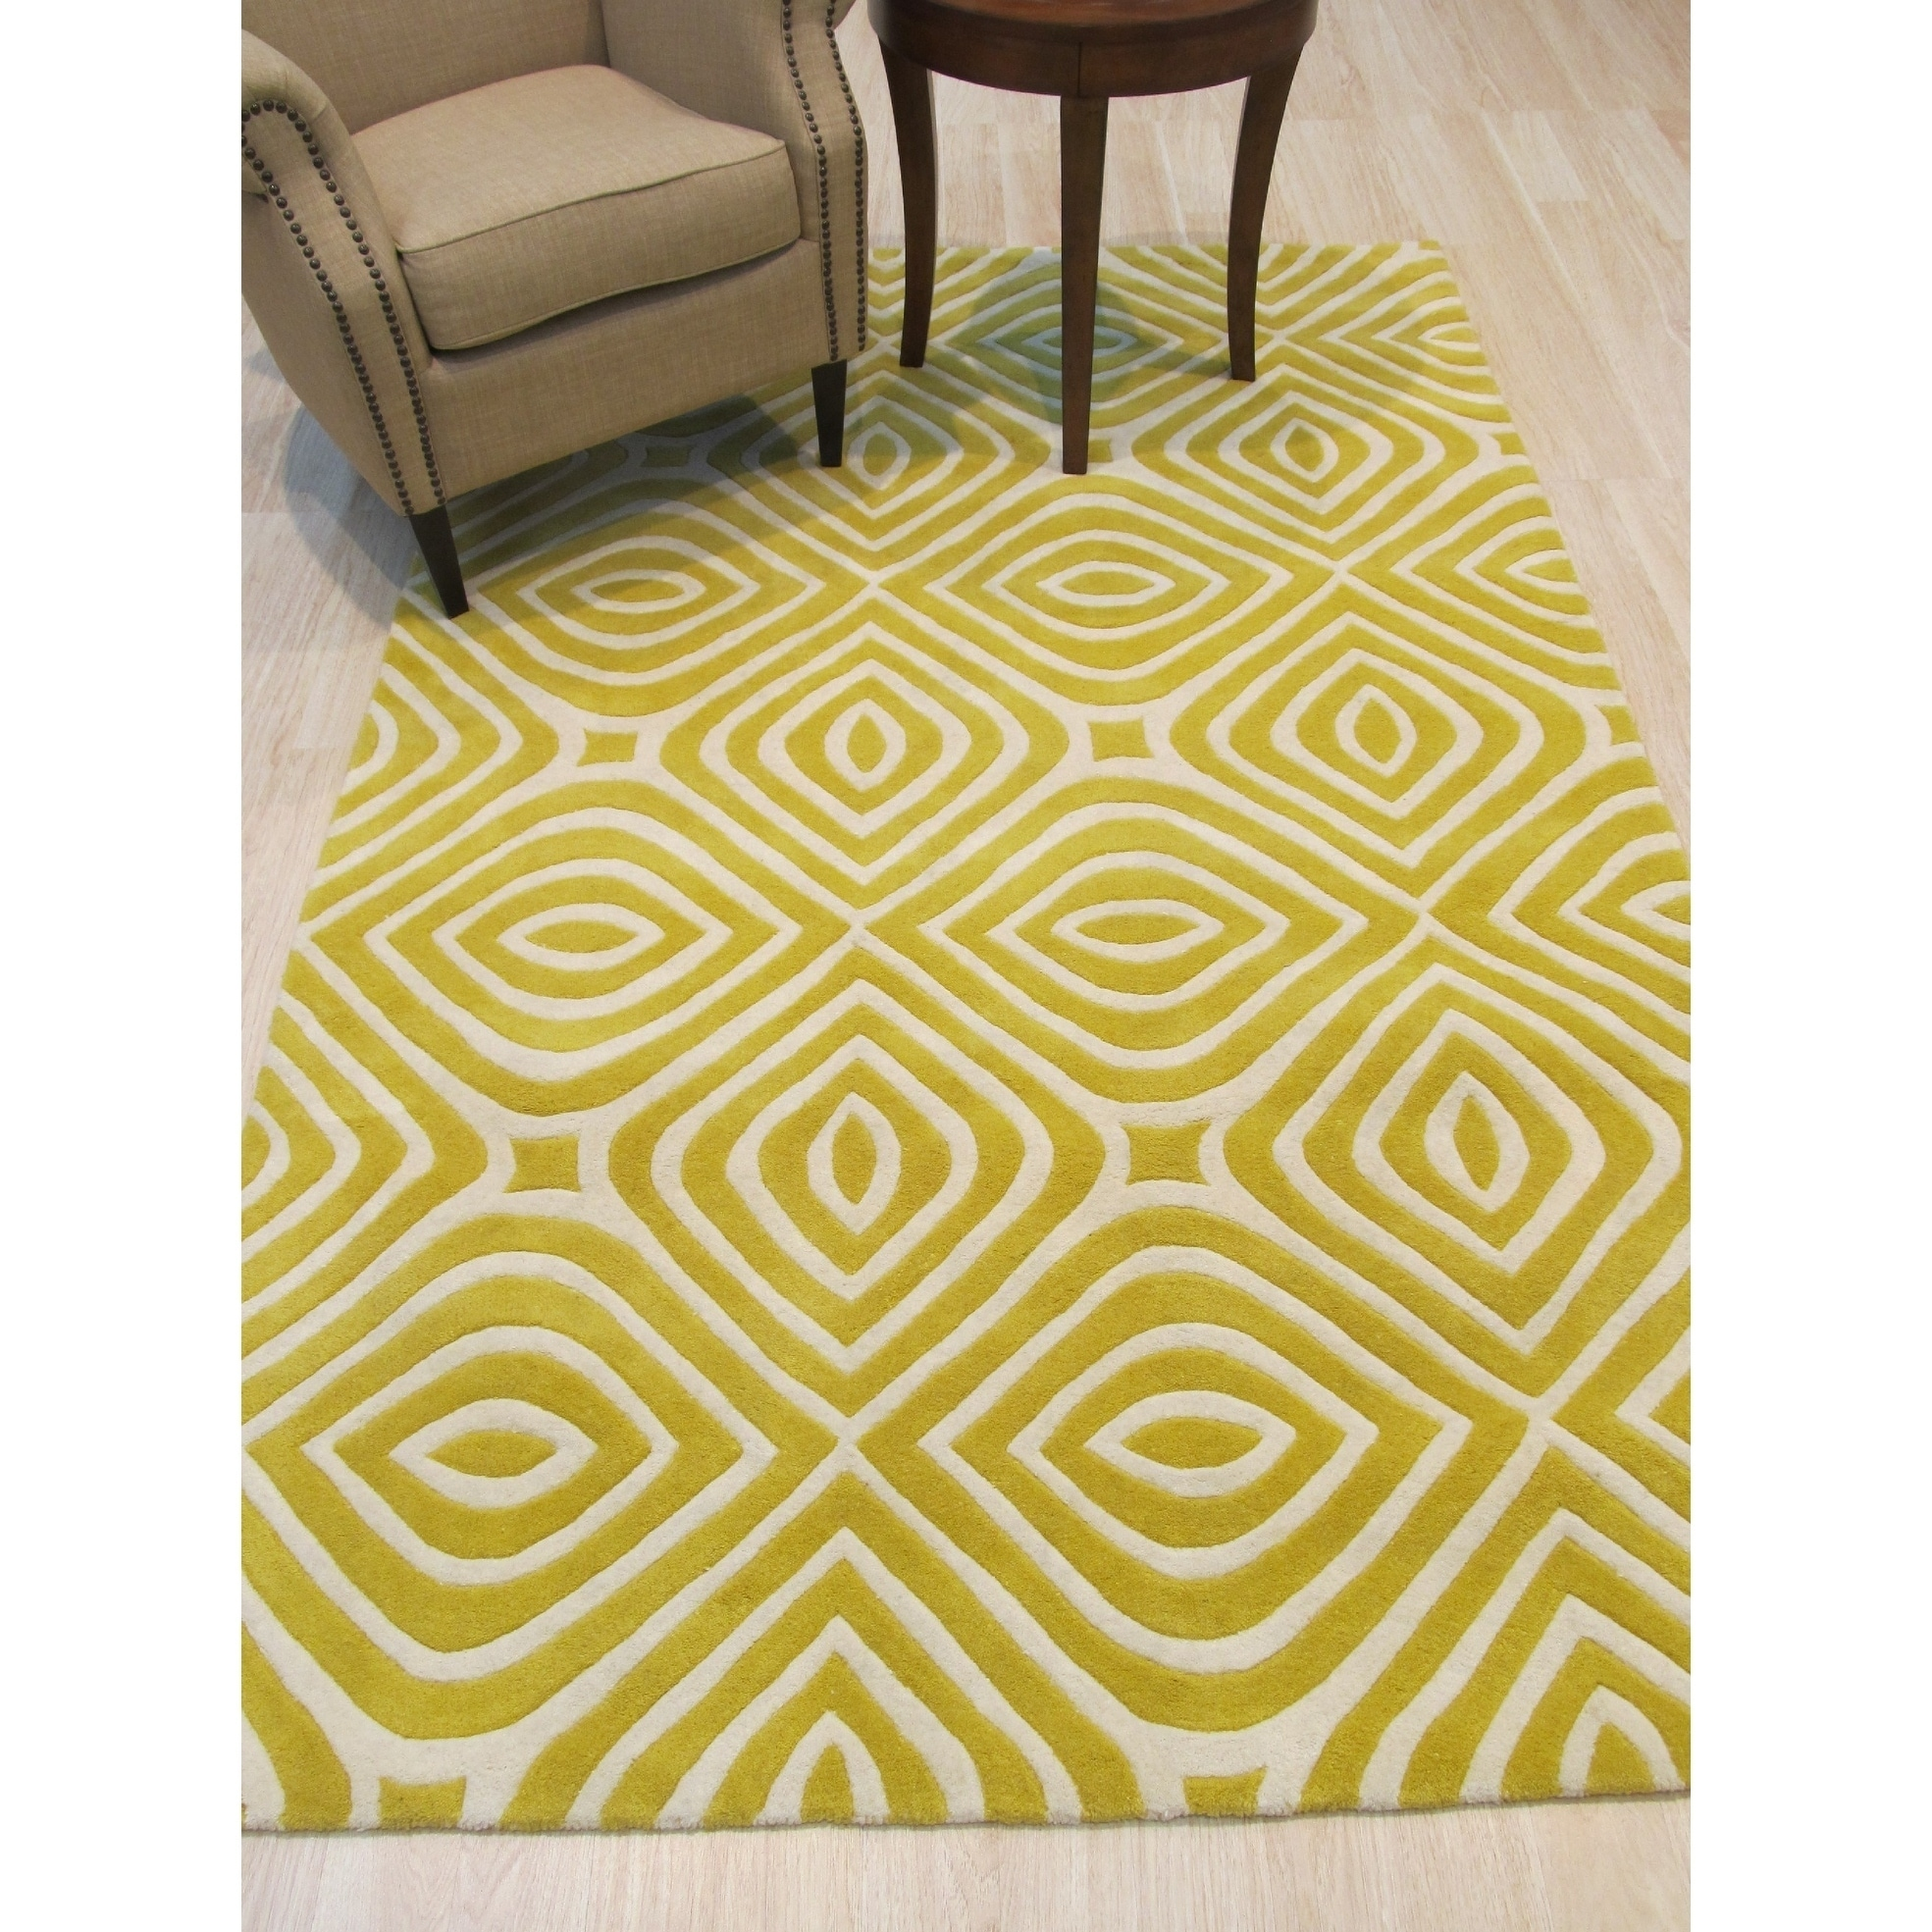 Eorc Marla Yellow Wool Hand Tufted Transitional Geometric Rug 5 X 8 Overstock 15369357